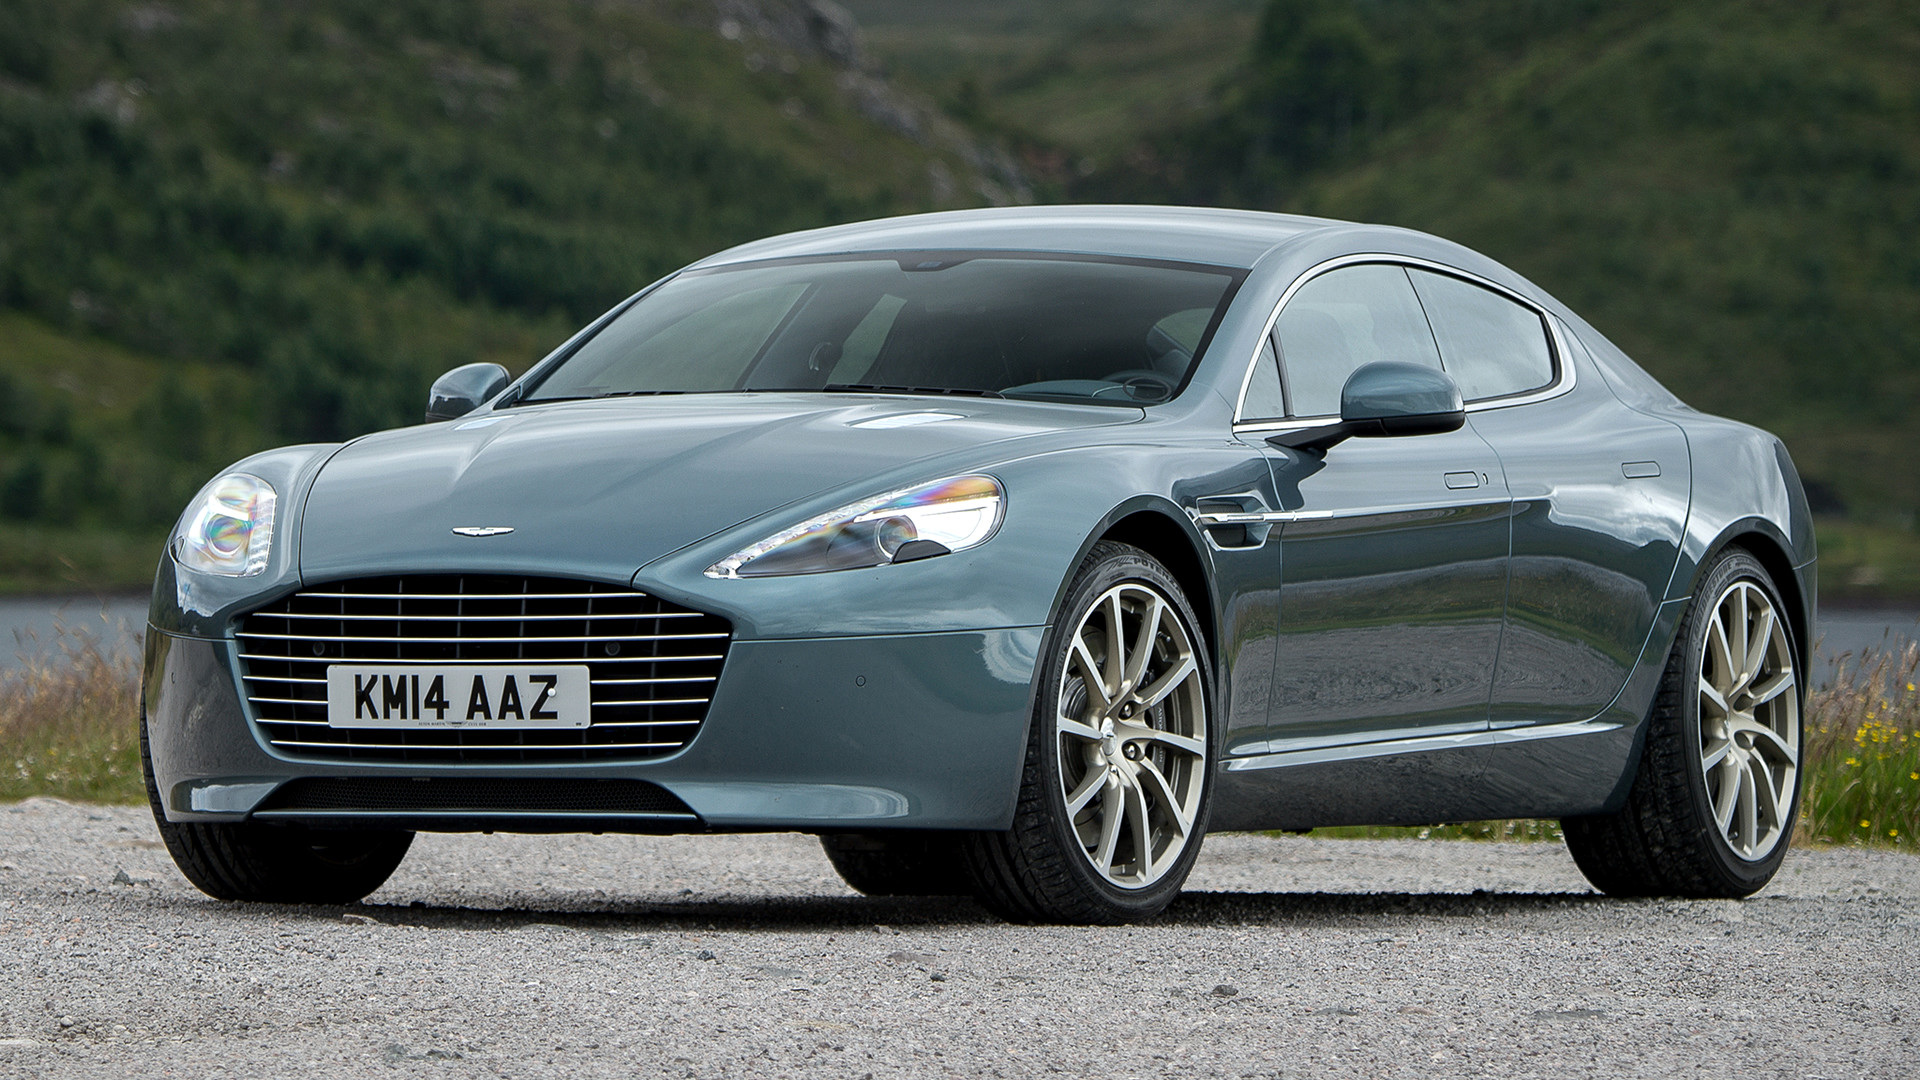 2013 Aston Martin Rapide S Wallpapers And Hd Images Car Pixel